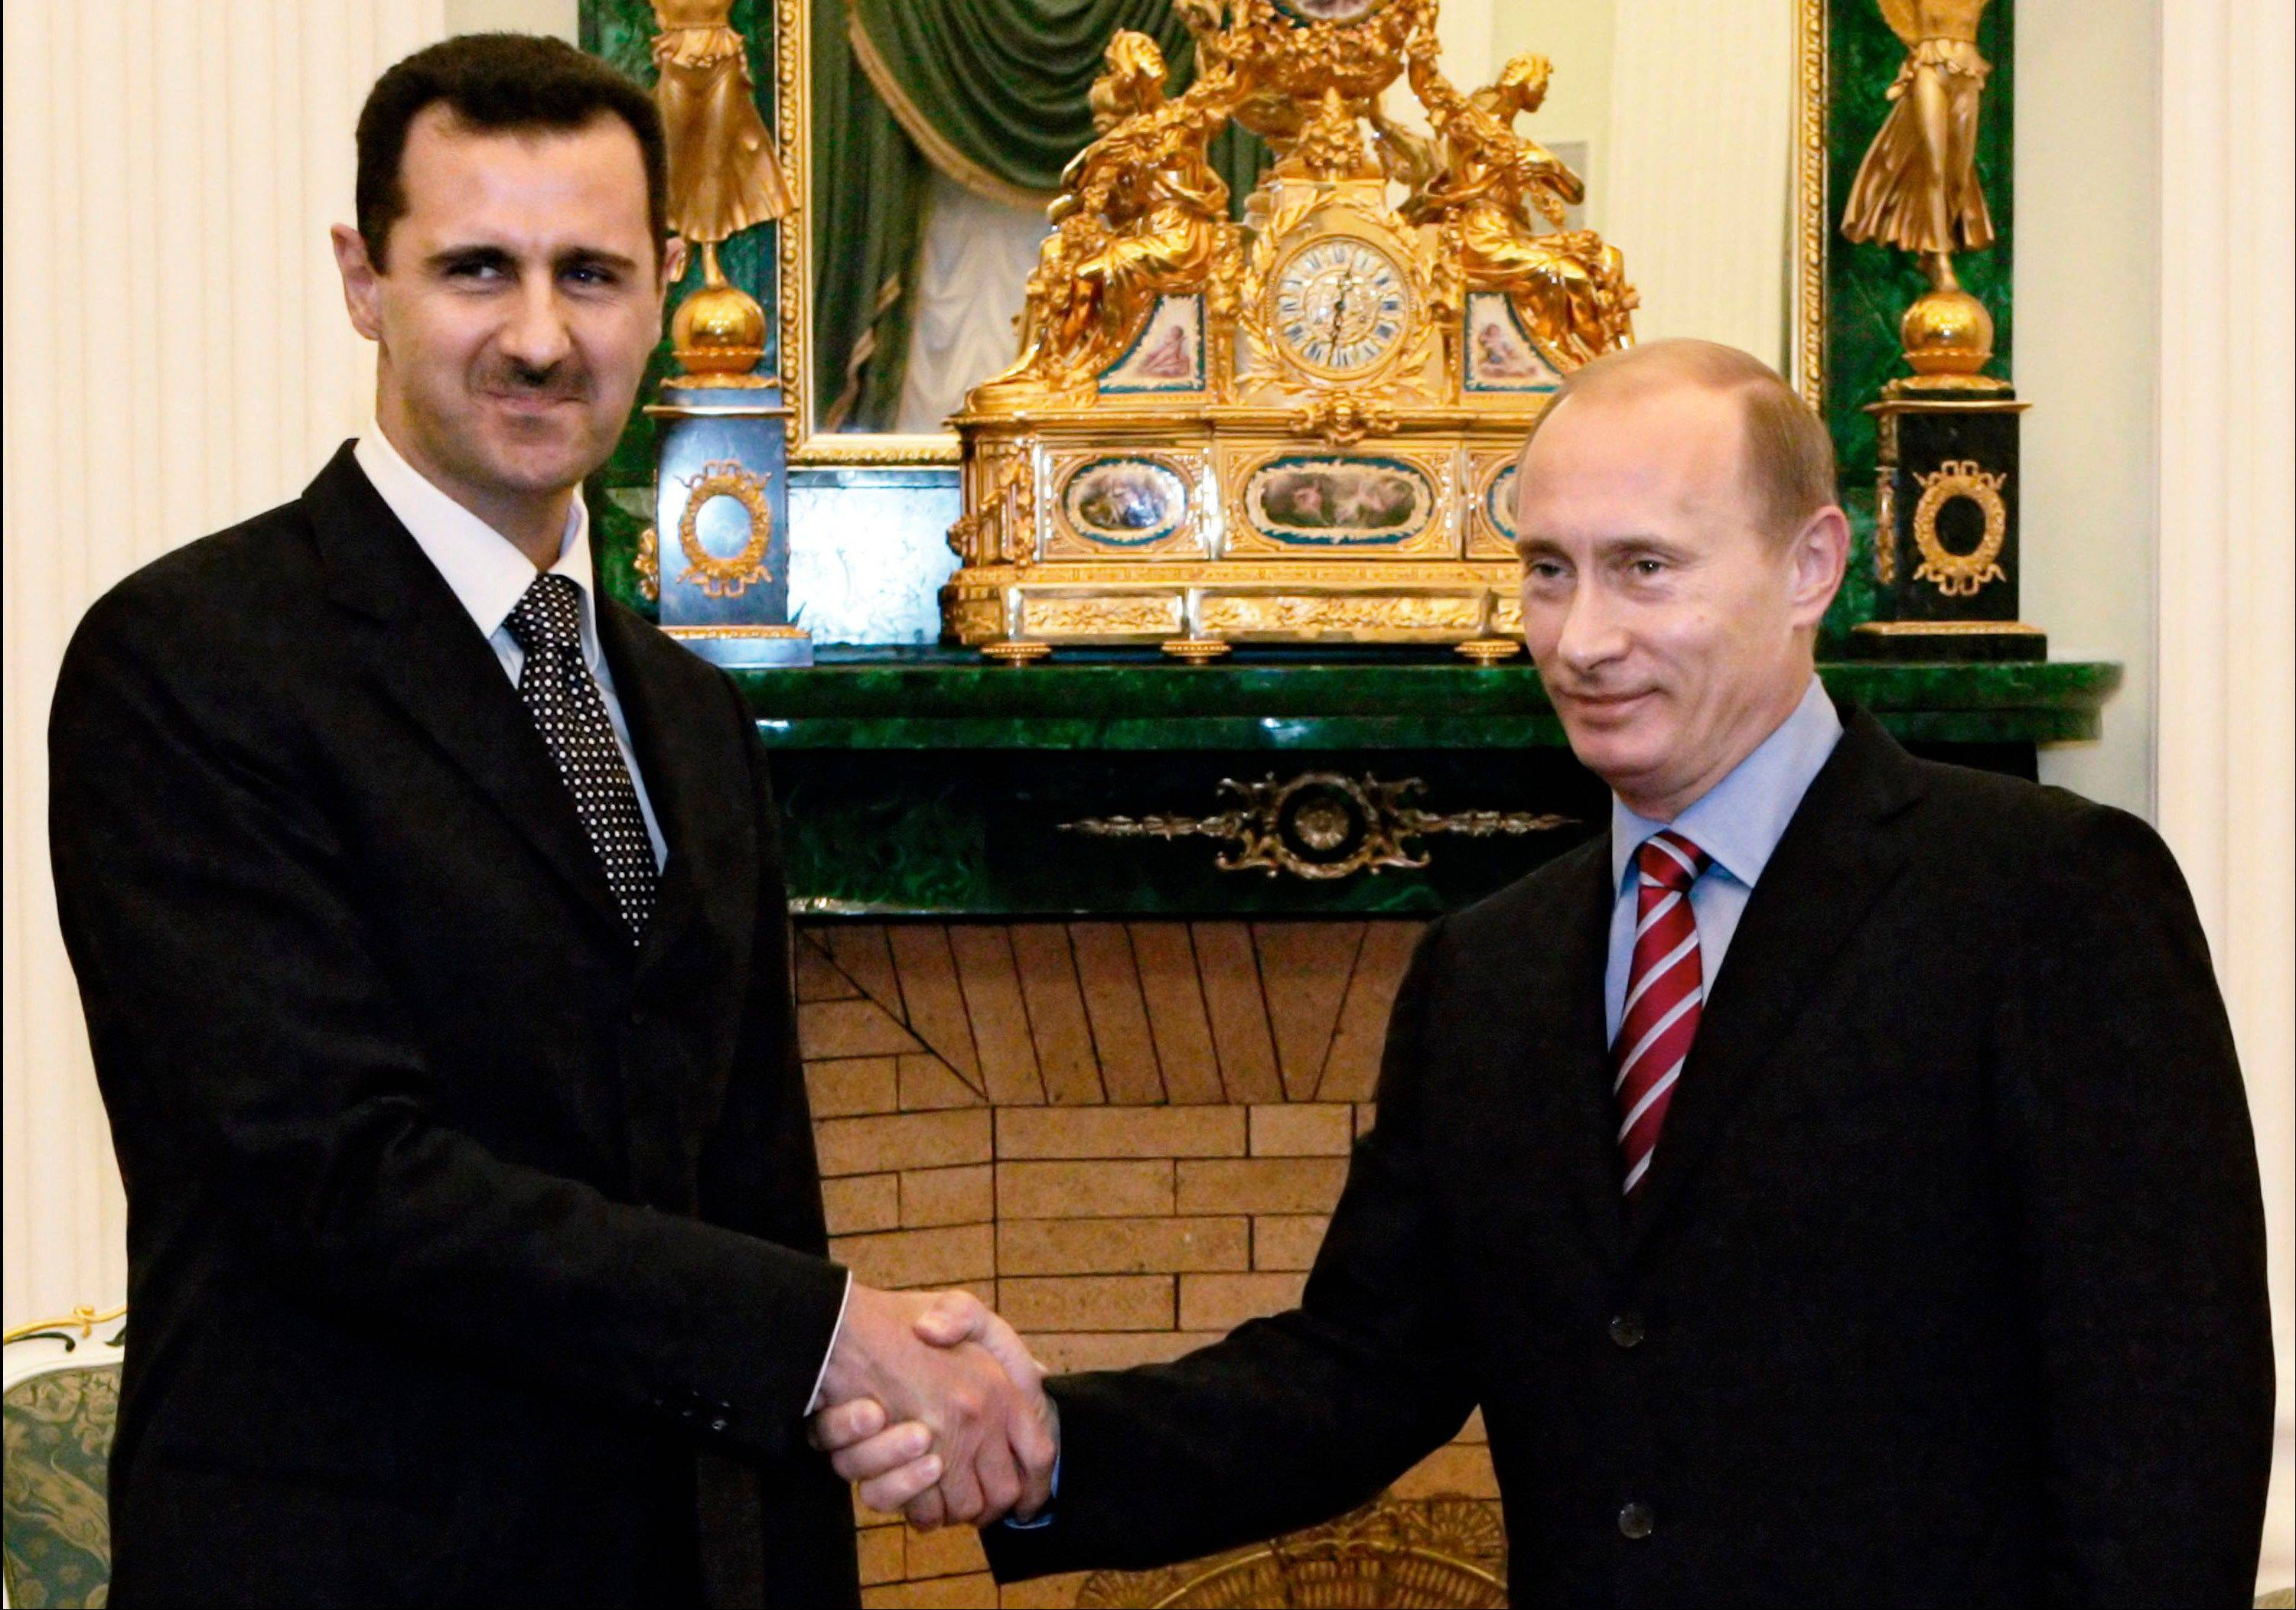 Putin gambit gets personal as newfound clout hinges on Assad